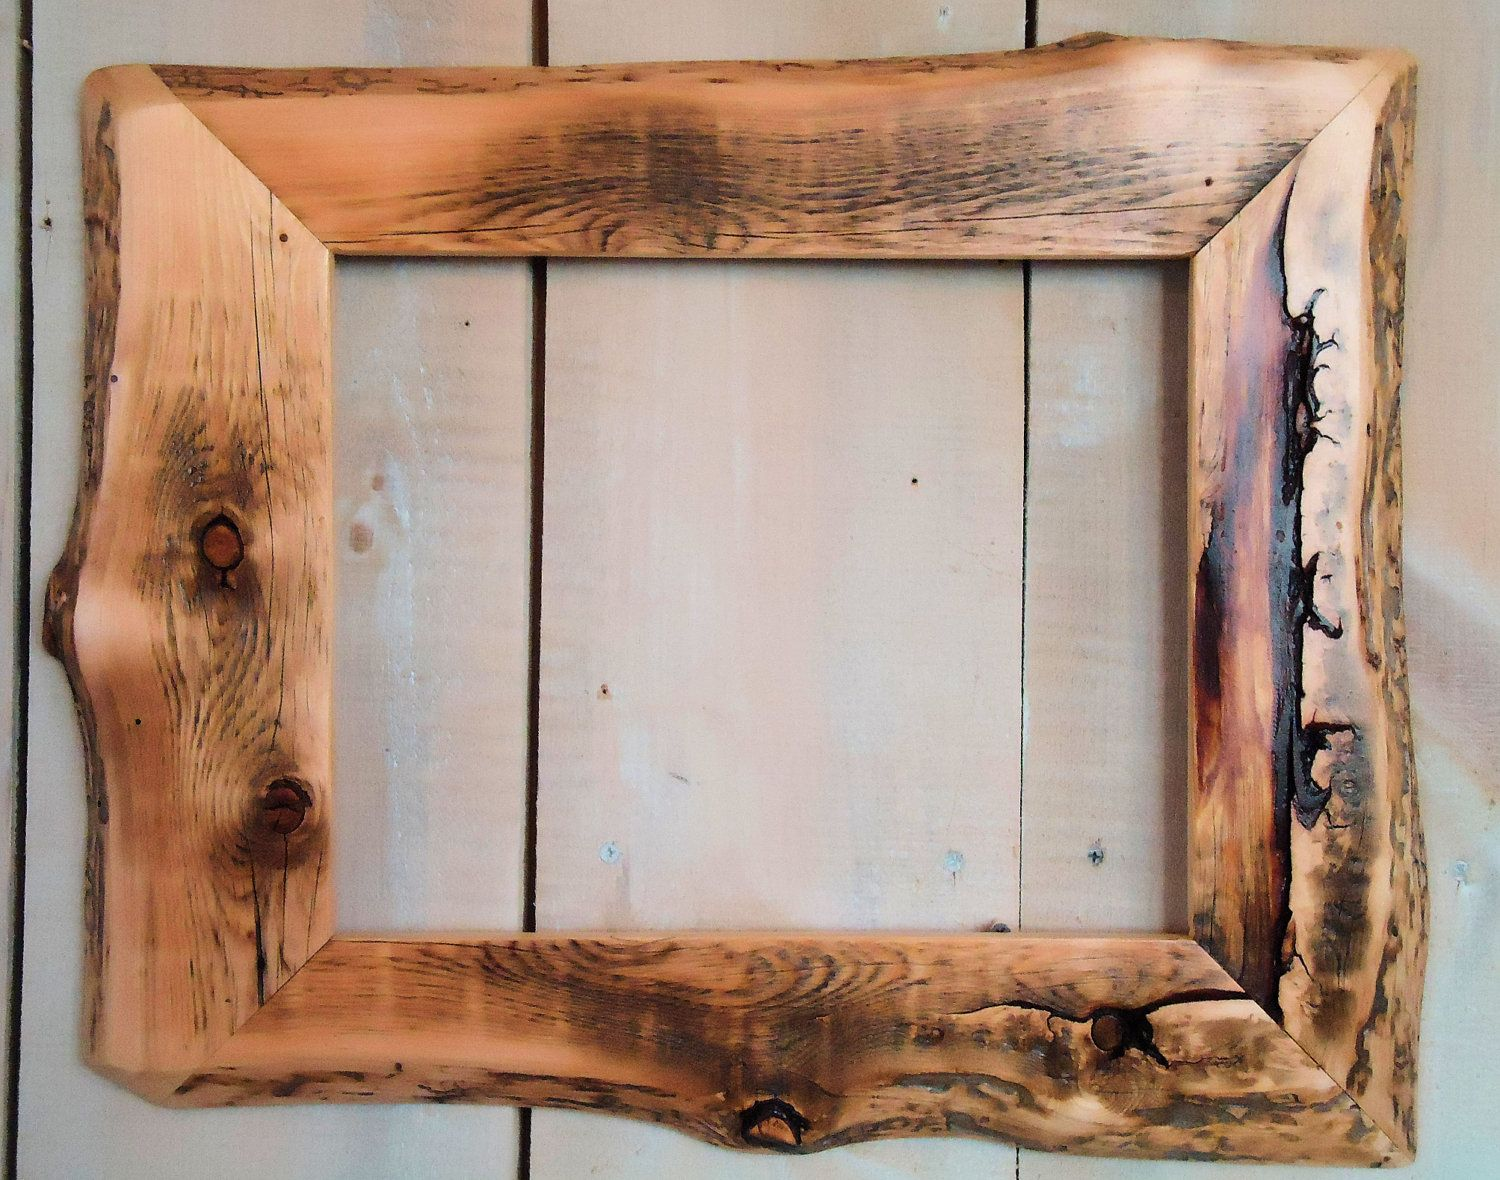 il_fullxfull.315118485.jpg (1500×1180) | Reclaimed Wood Frames and Art |  Pinterest | Rustic wood, Ceramics and Wood pictures - Il_fullxfull.315118485.jpg (1500×1180) Reclaimed Wood Frames And